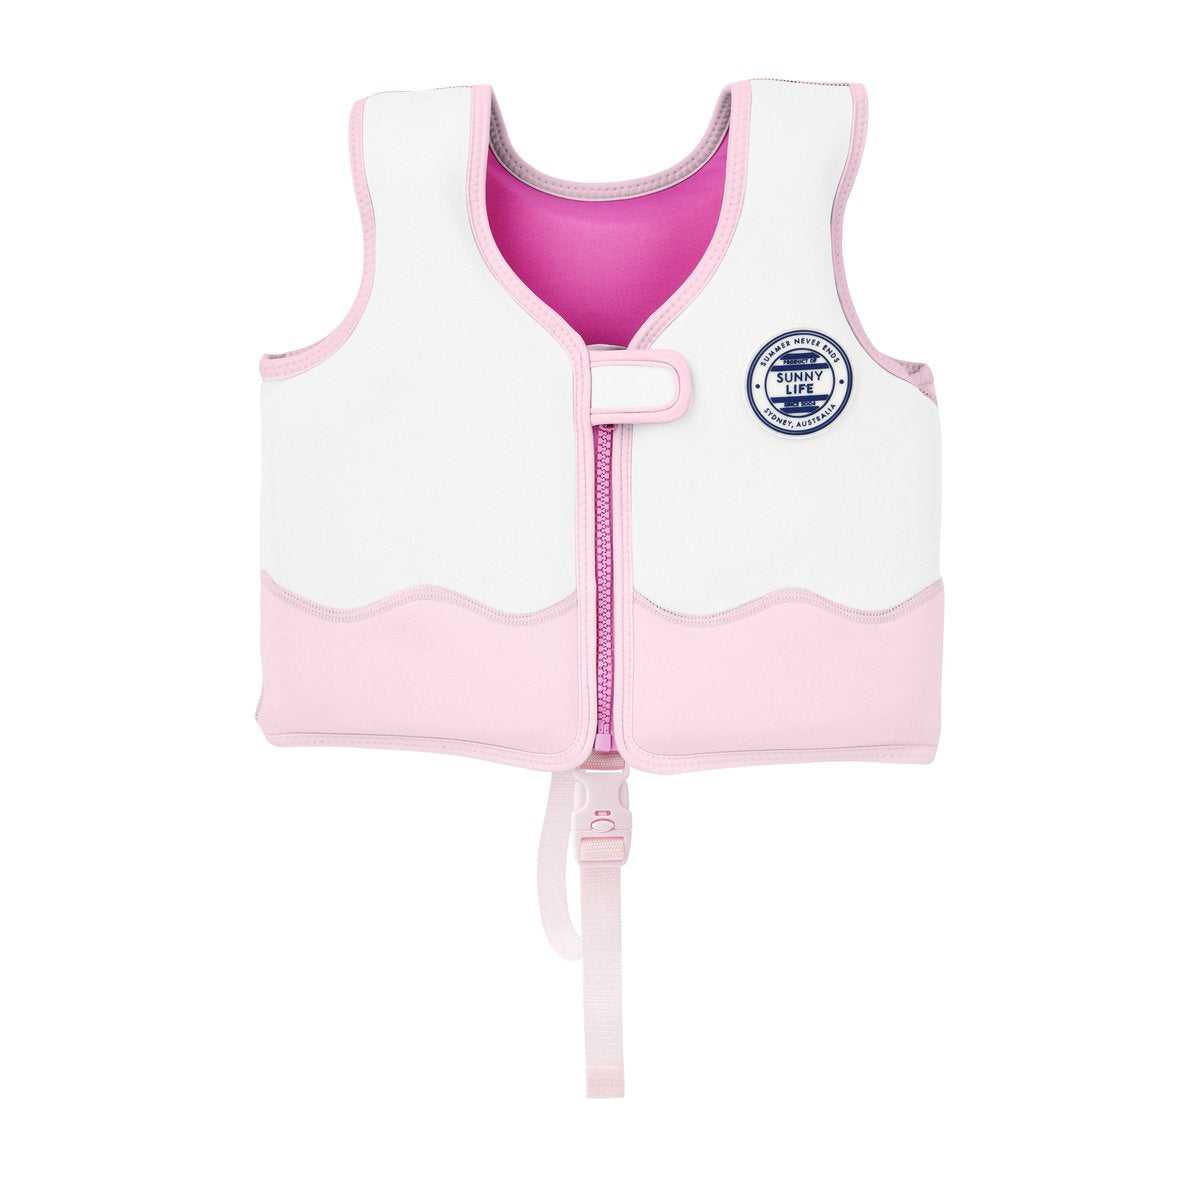 SUNNYLIFE FLOAT VEST 1 - 2 | UNICORN